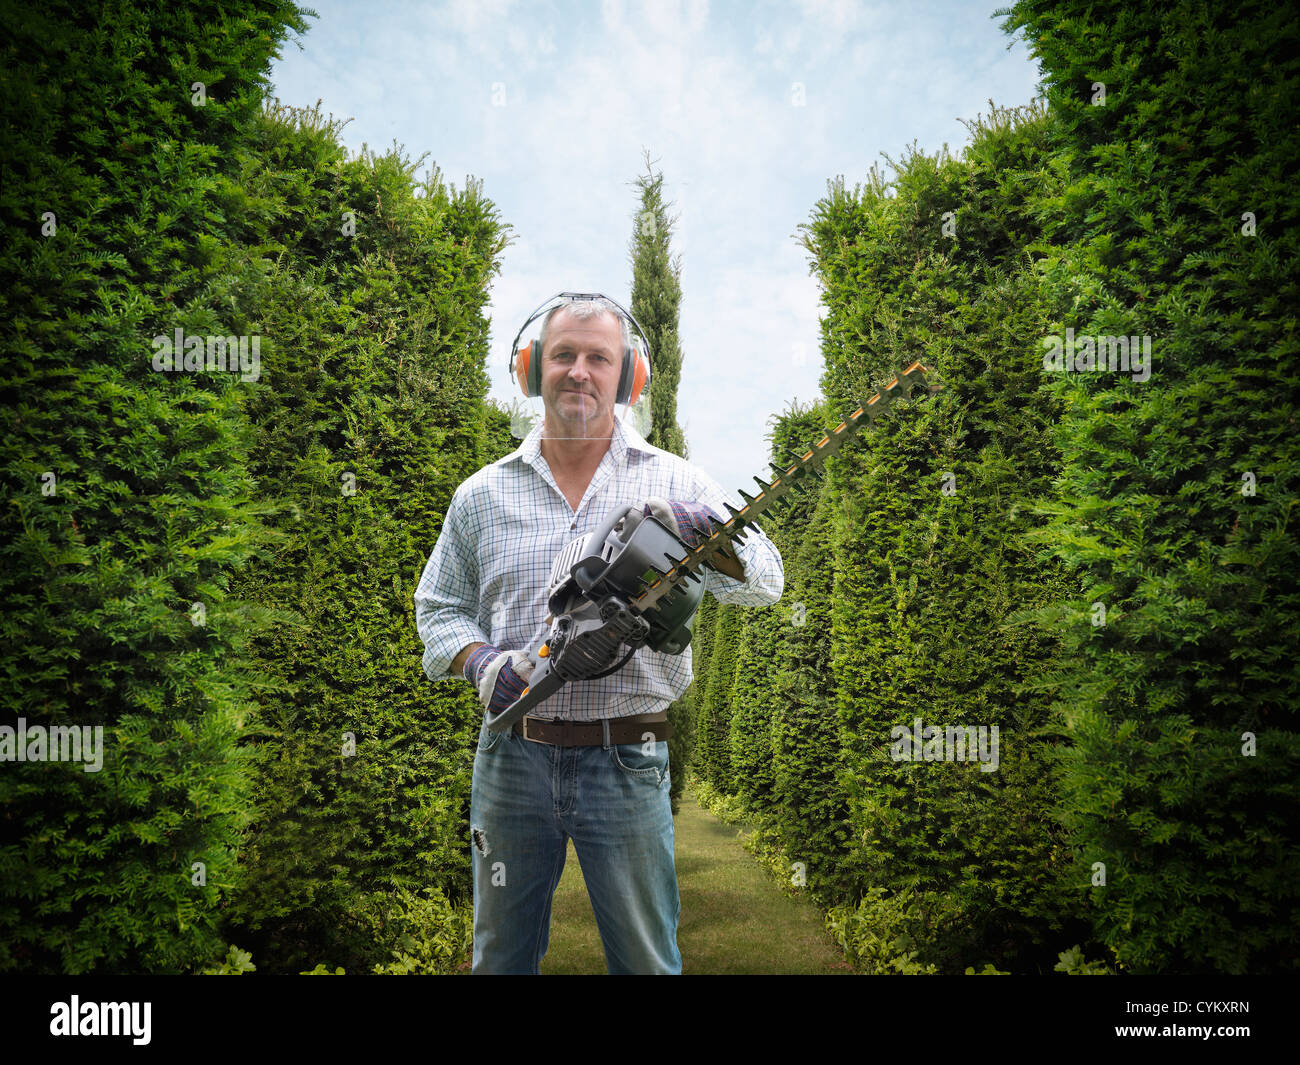 Man holding hedge trimmer in garden Stock Photo